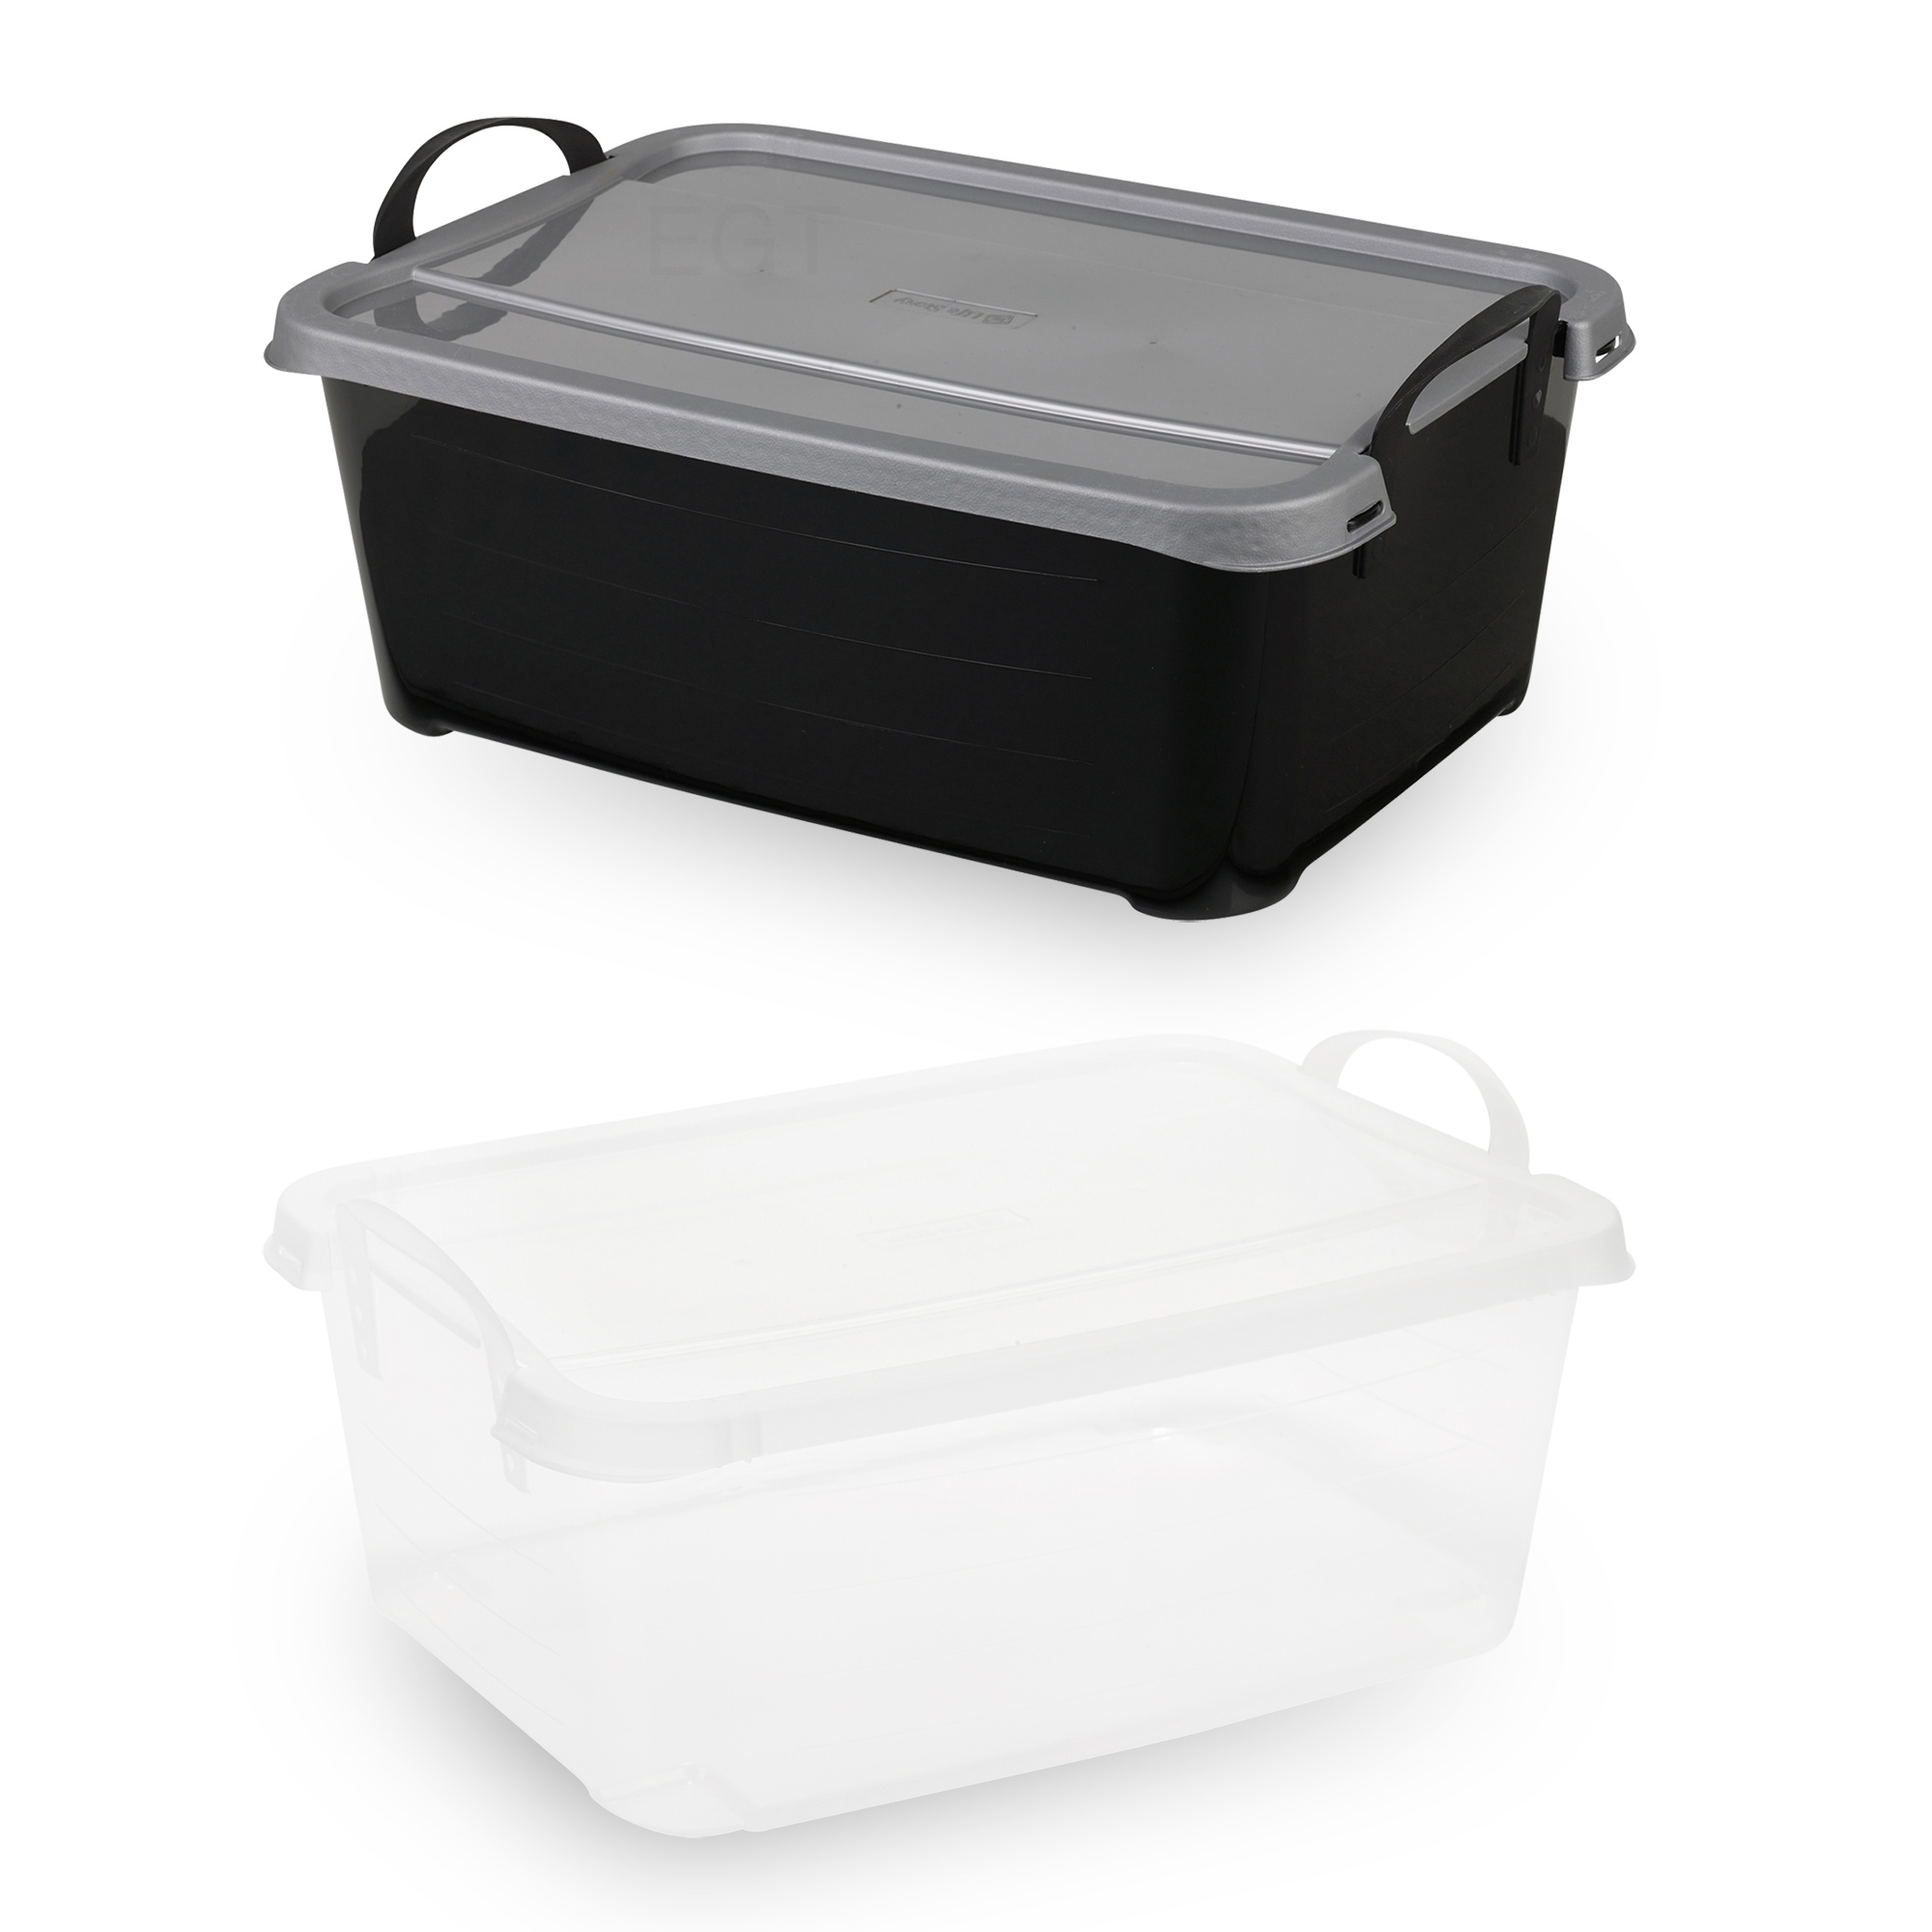 underbed plastic storage boxes with lids carry handles. Black Bedroom Furniture Sets. Home Design Ideas